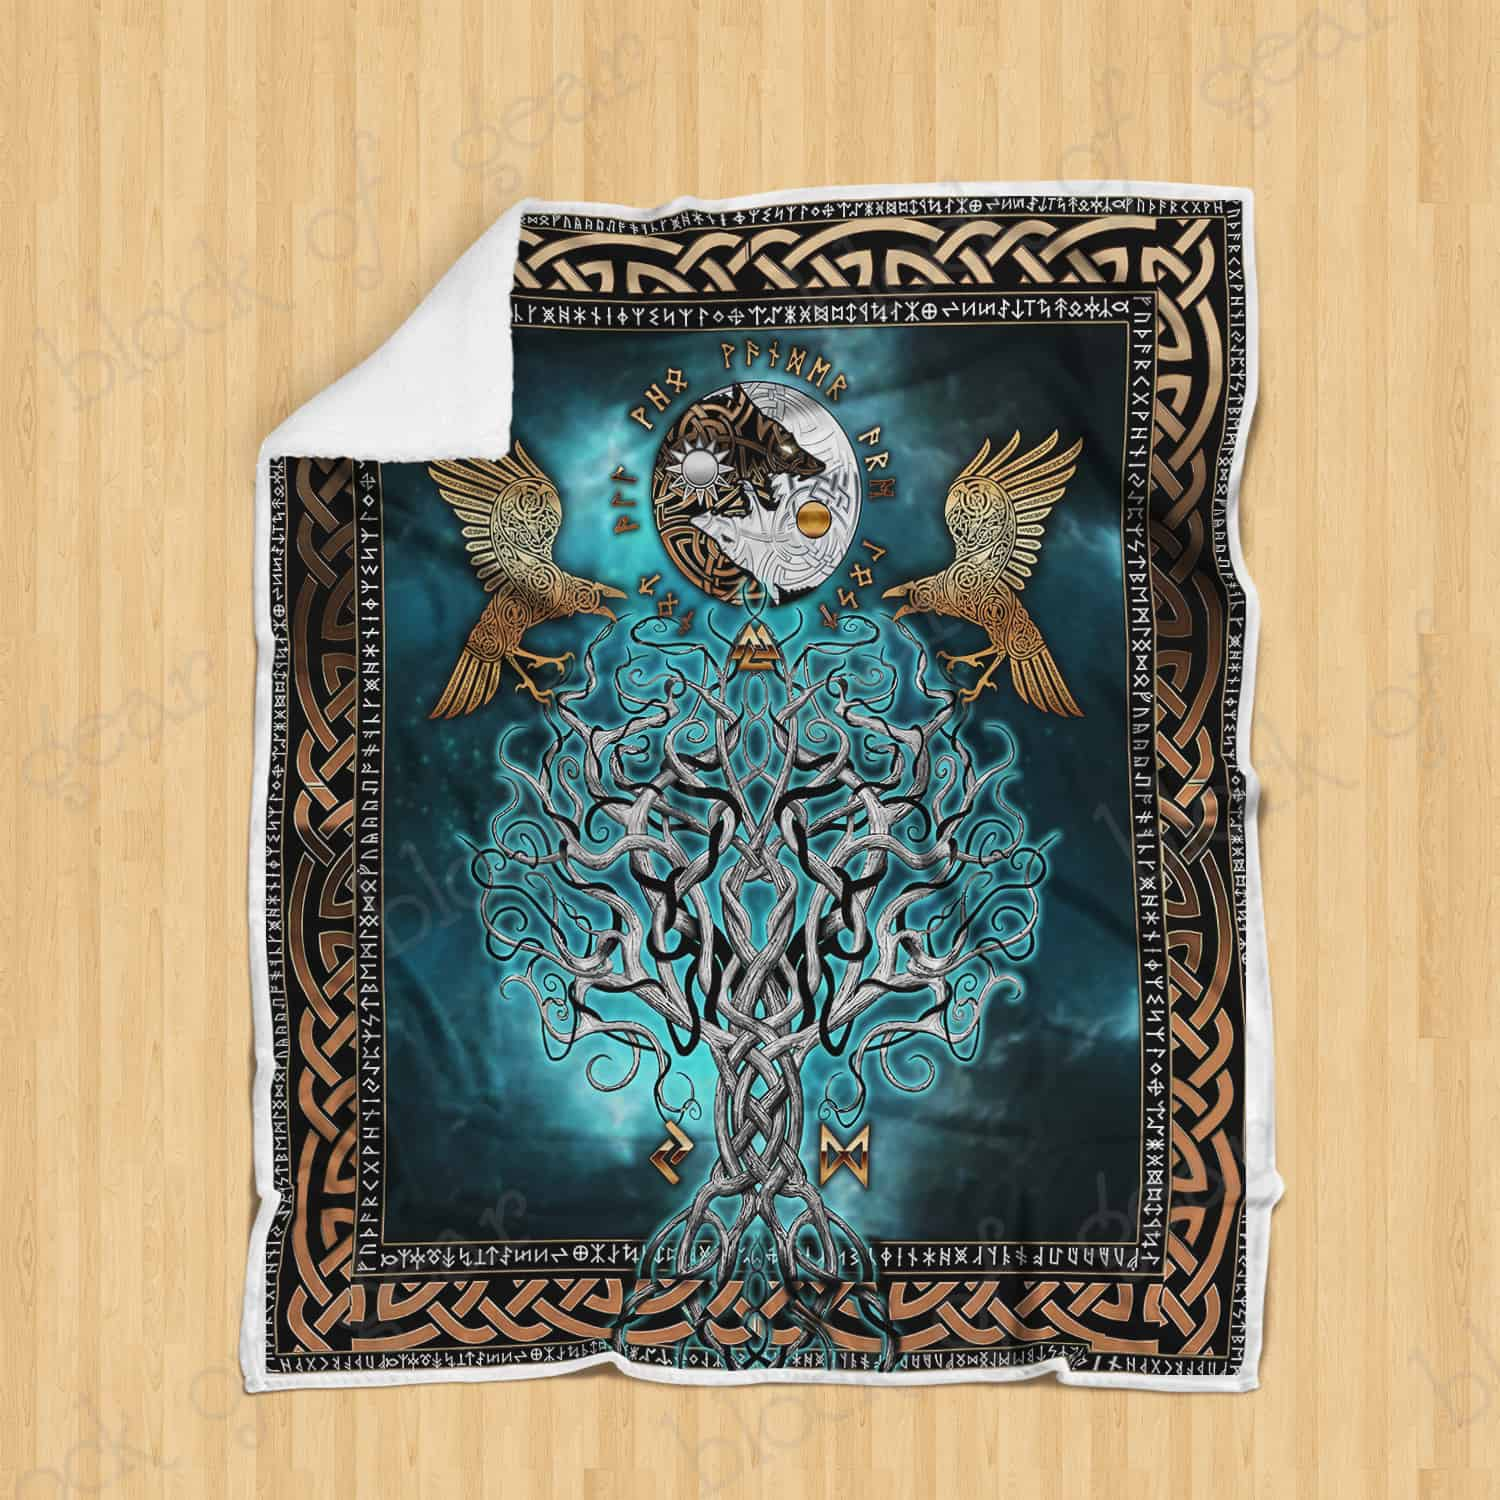 compass yggdrasil viking all over printed blanket 2